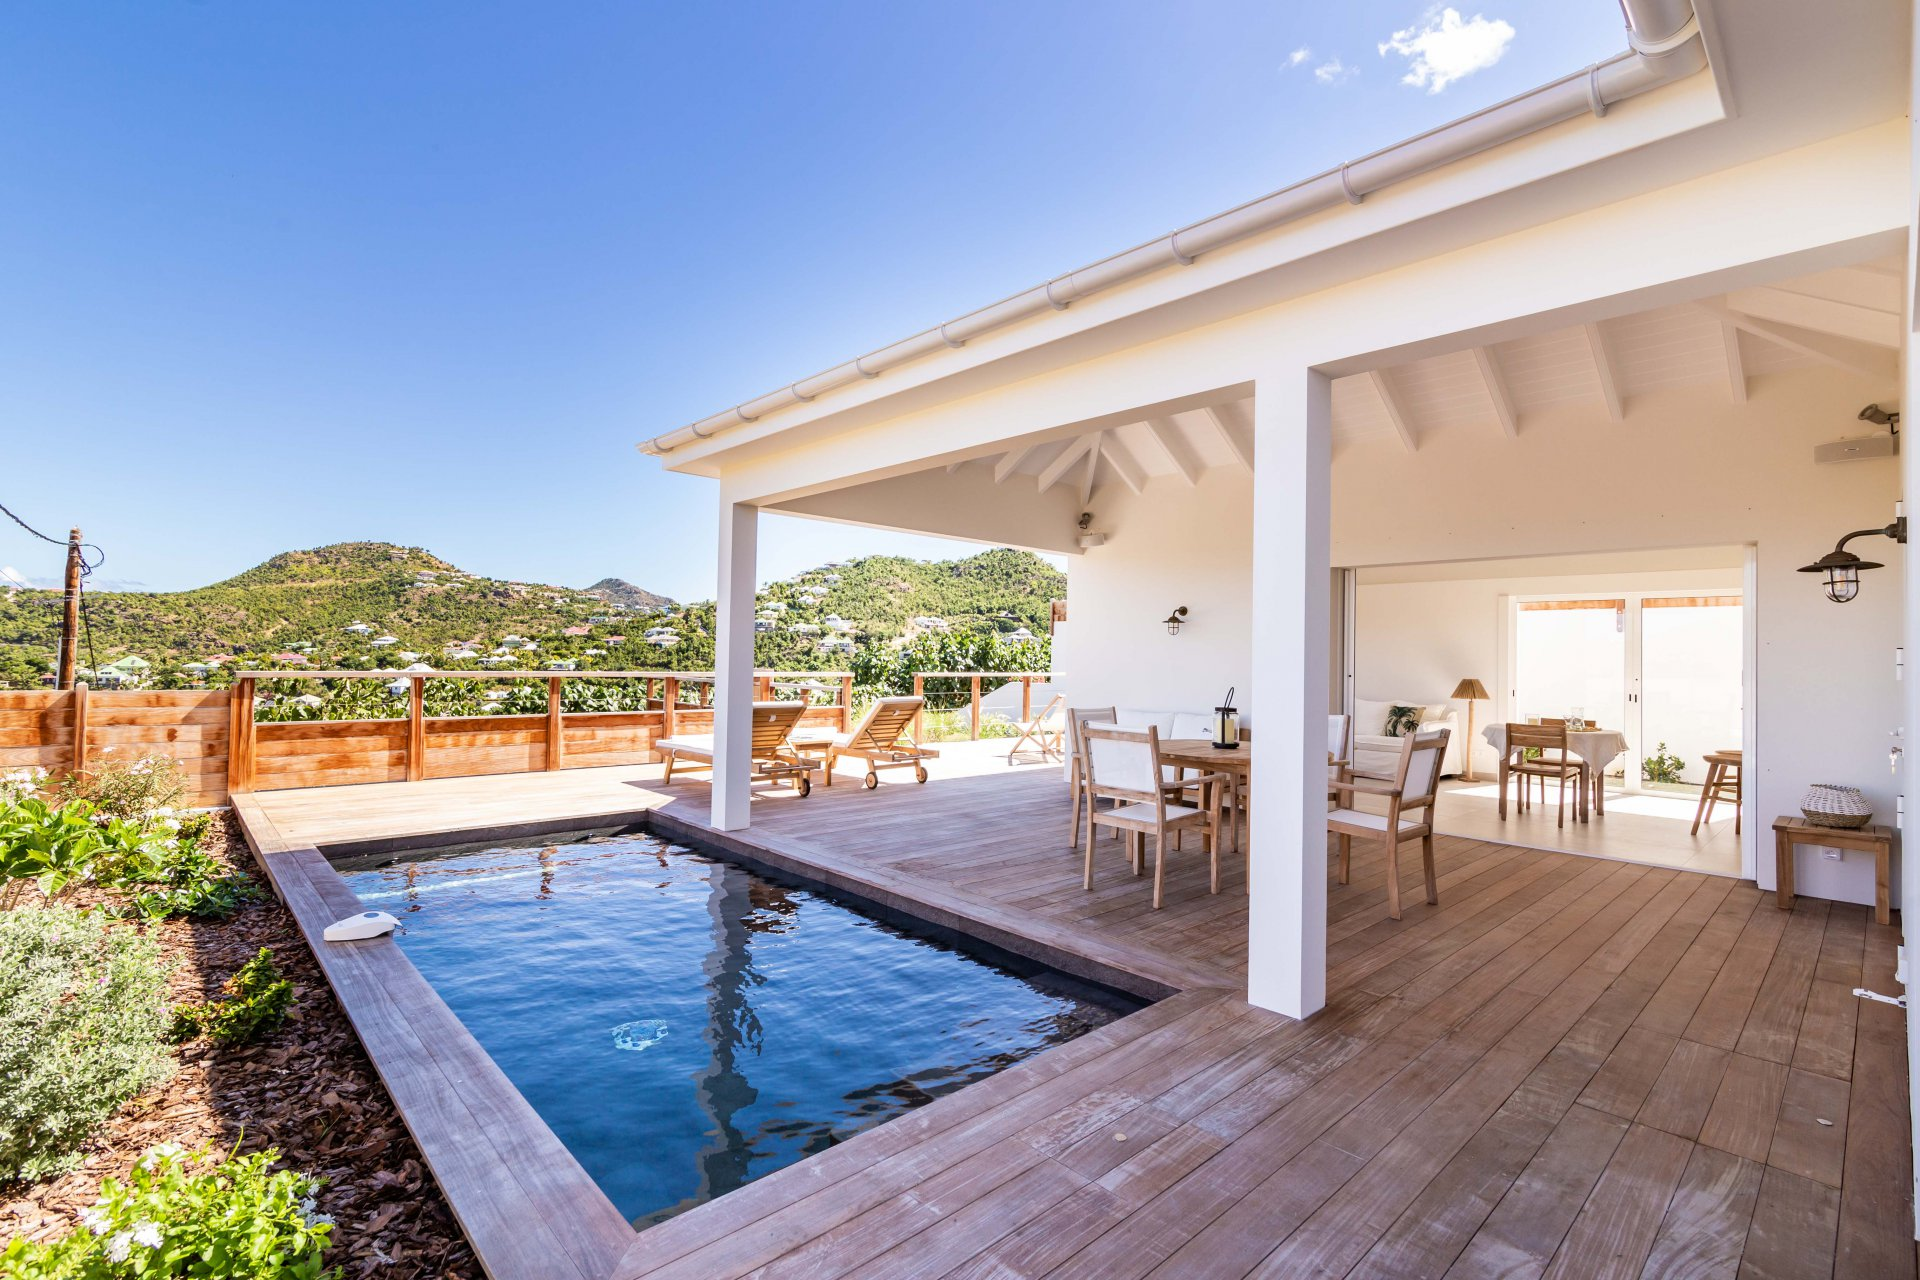 VILLA CONTEMPORAINE AVEC PISCINE - SAINT BARTH